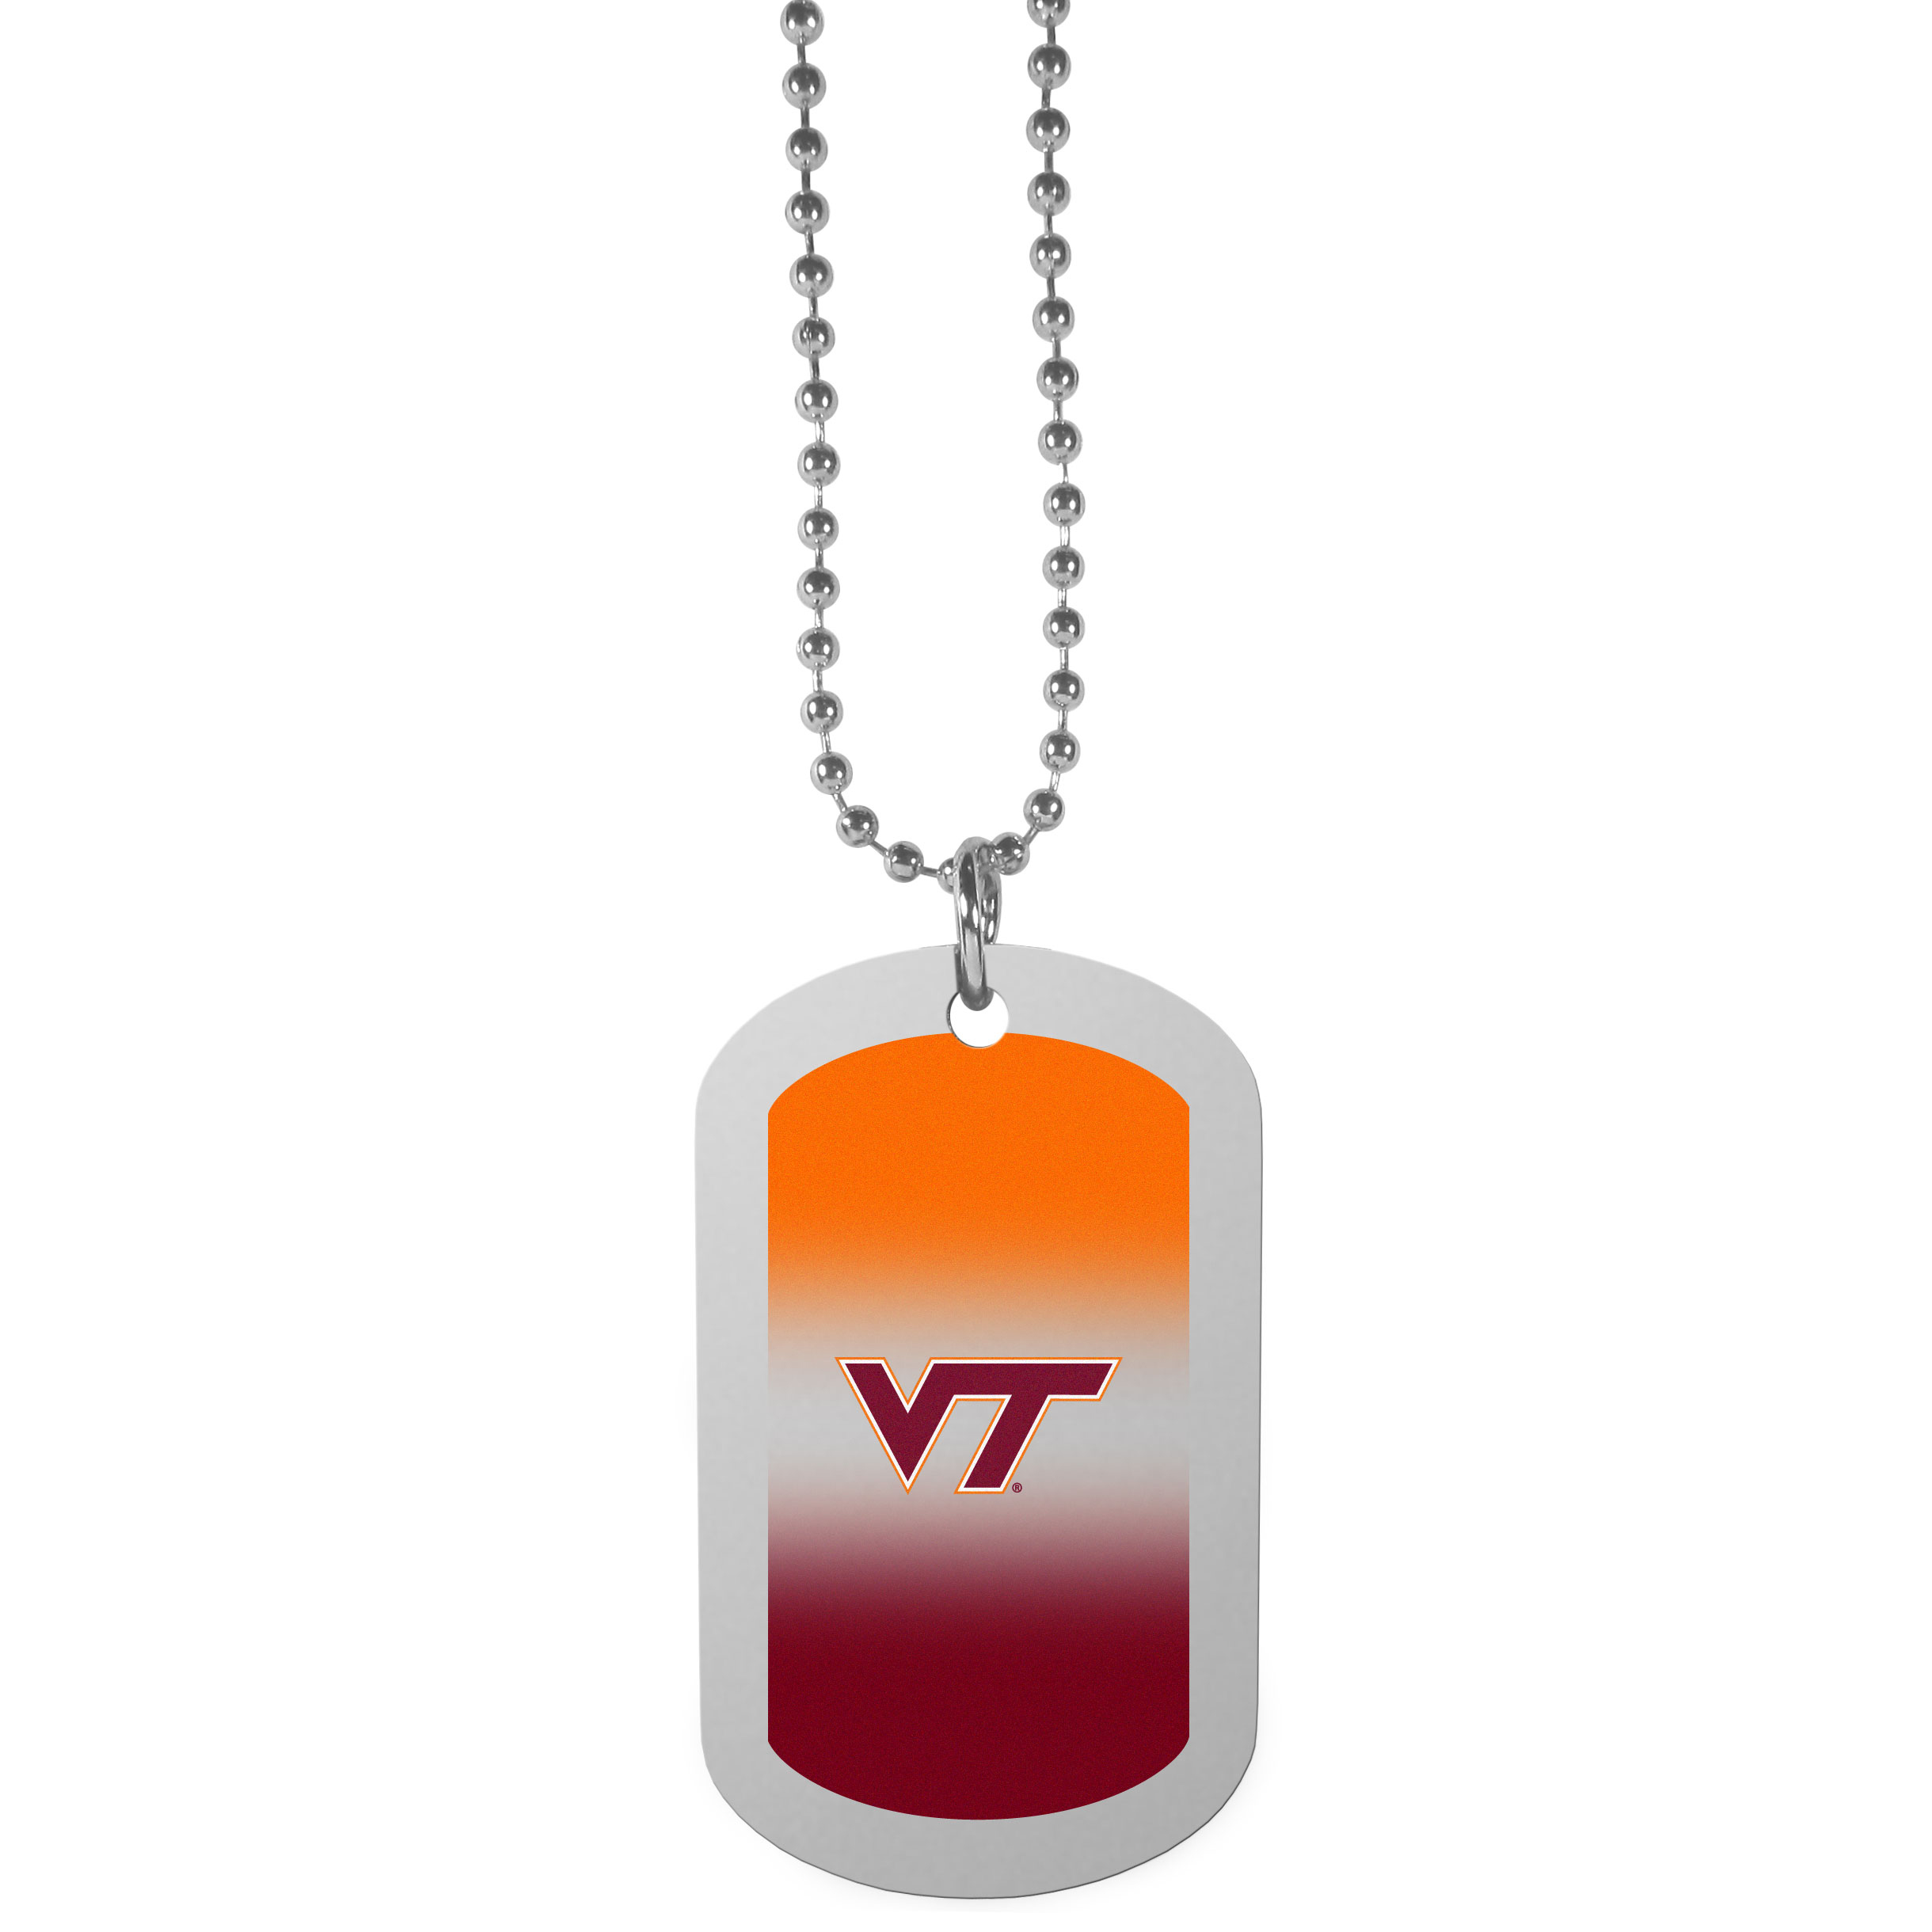 Virginia Tech Hokies Team Tag Necklace - Dog tag necklaces are a fashion statement that is here to stay. The sporty version of the classic tag features a gradient print in team colors featuring a full color team logo over a high polish tag to create a bold and sporty look. The tag comes on a 26 inch ball chain with a ball and joint clasp. Any Virginia Tech Hokies would be proud to wear this attractive fashion accessory.